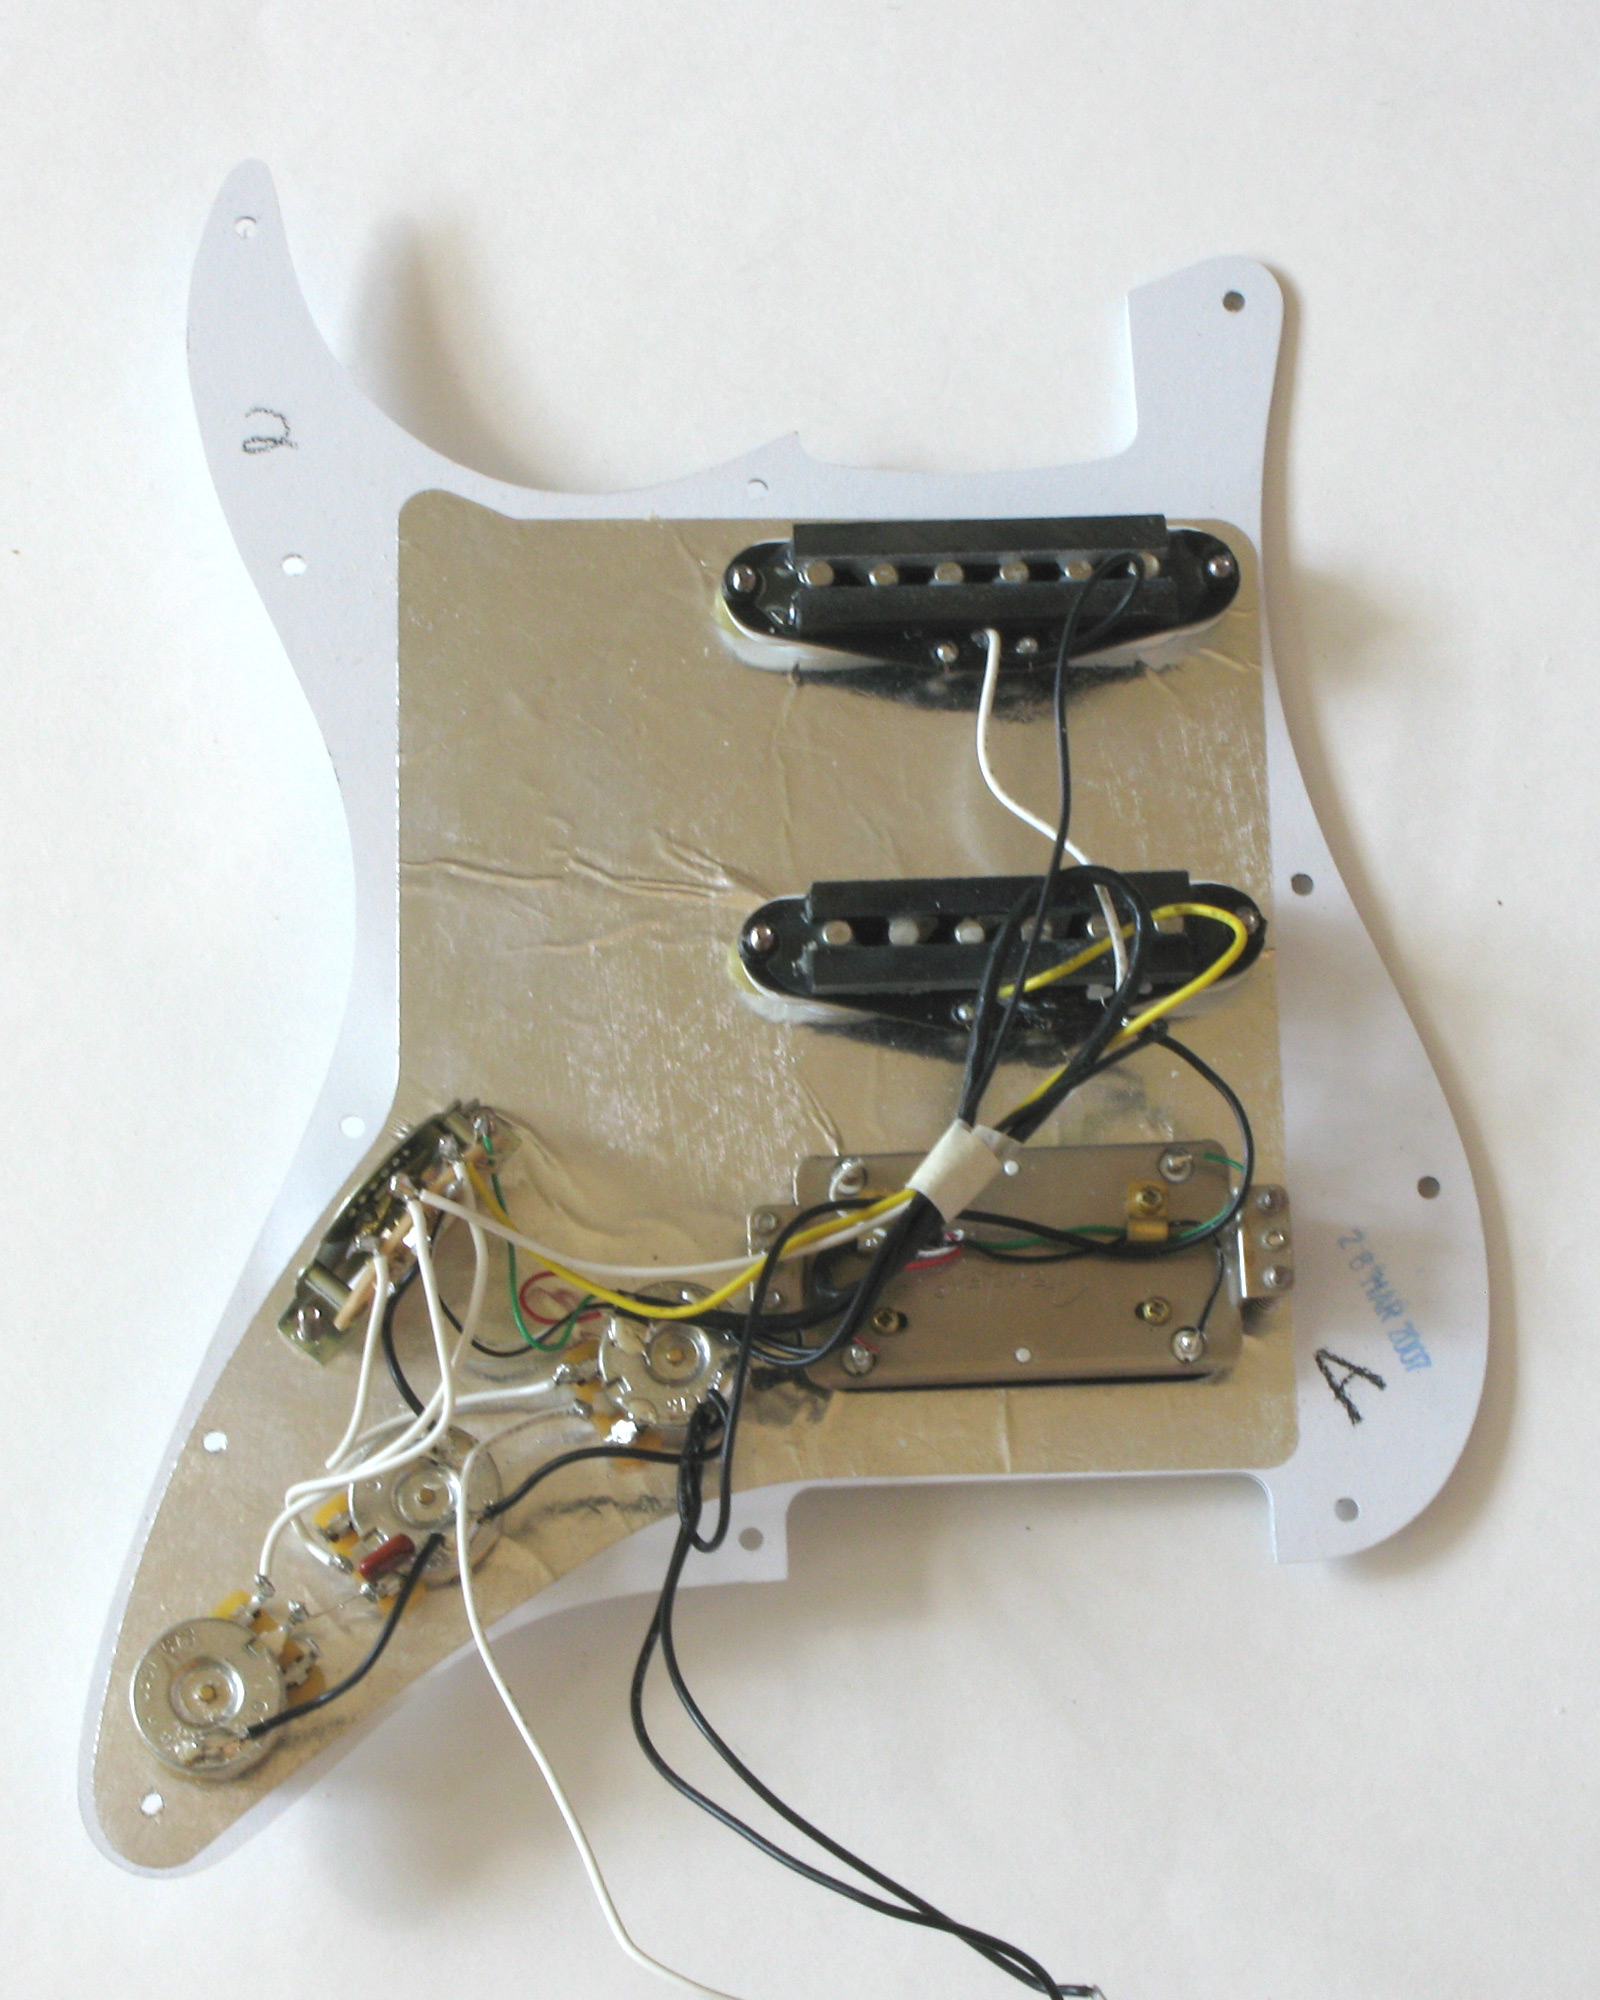 Fender Hss Strat Wiring Diagram Stratocaster Mexican - Today Wiring - Hss Wiring Diagram